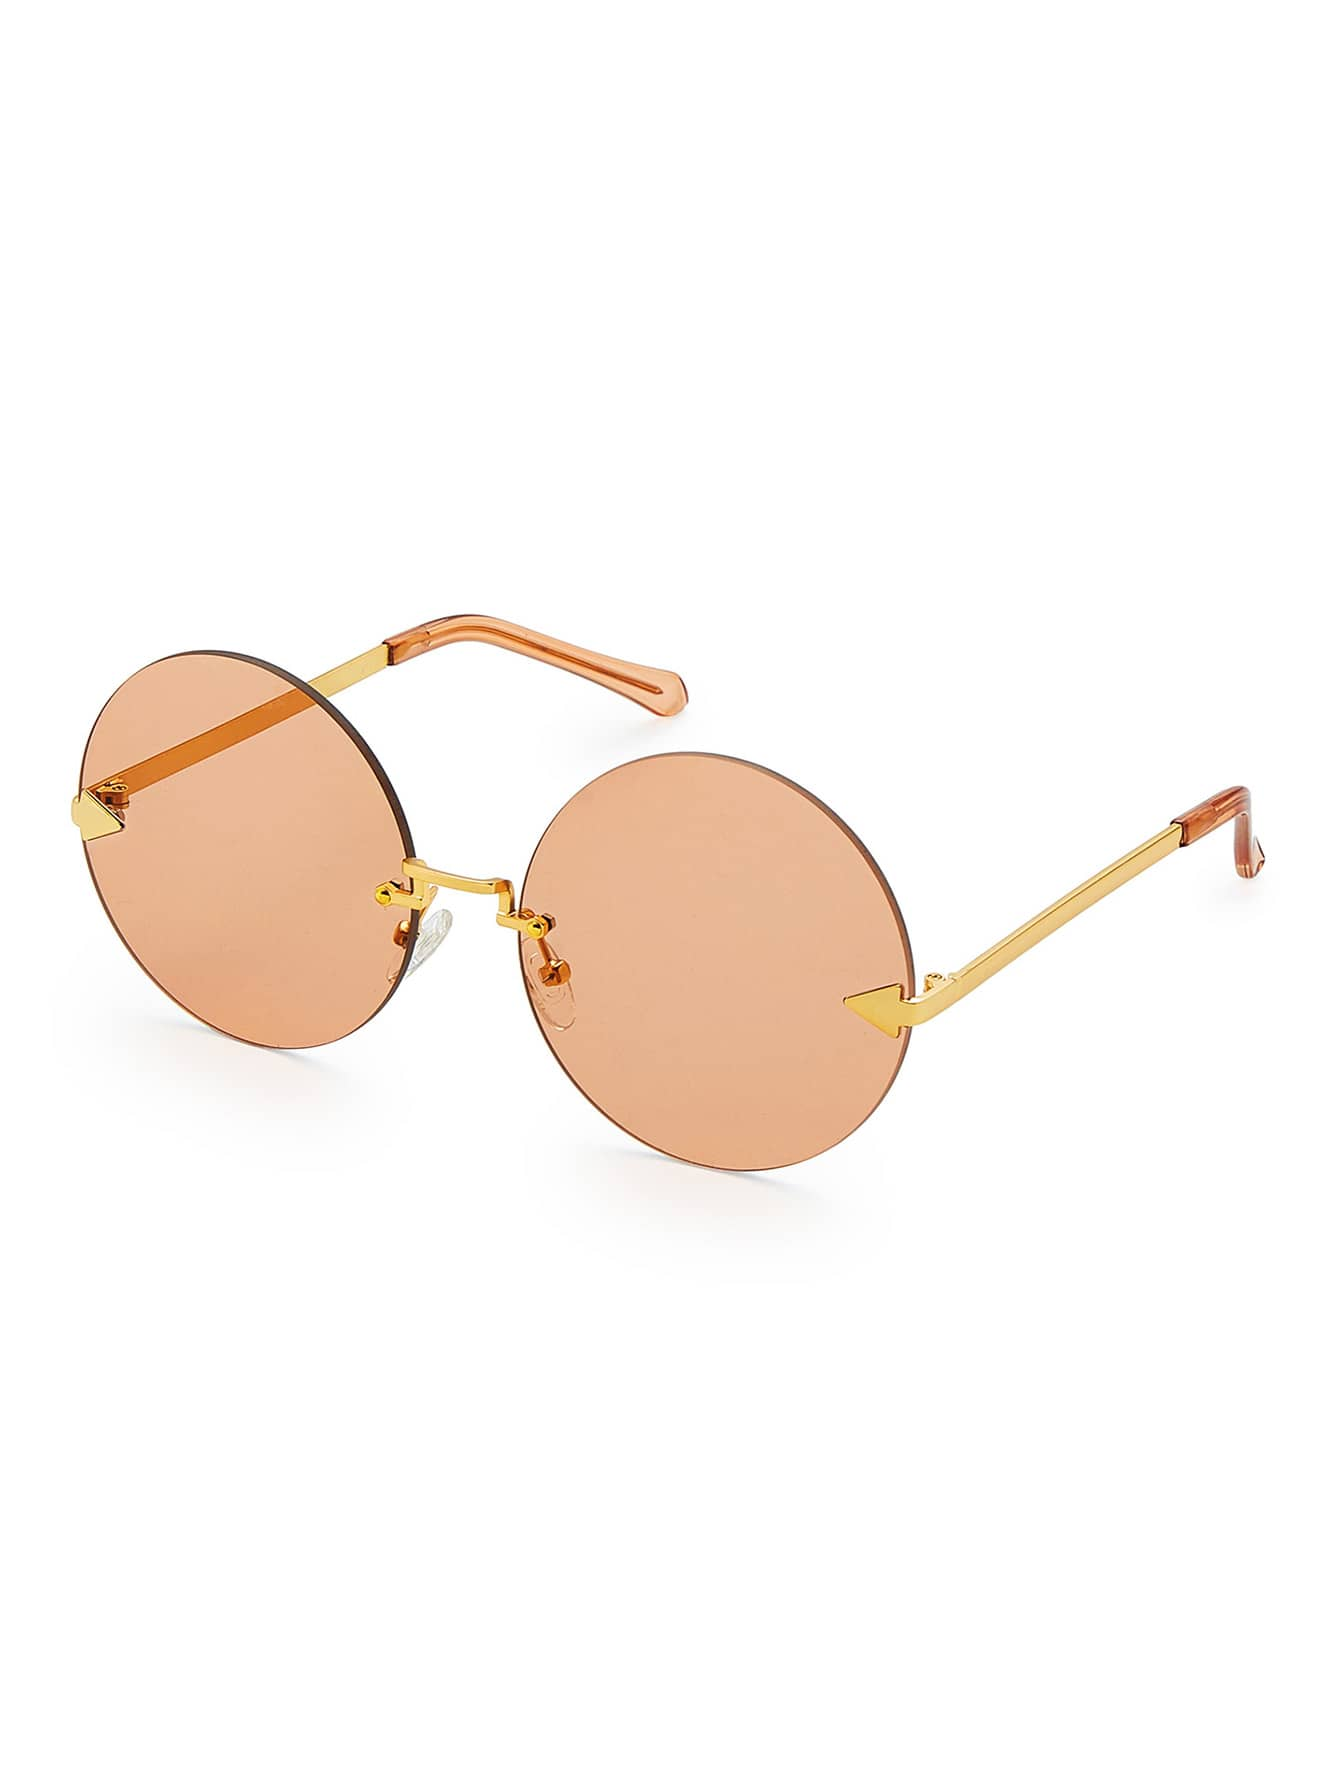 Rimless Glasses Round Lens : Round Lens Rimless Sunglasses -SheIn(Sheinside)